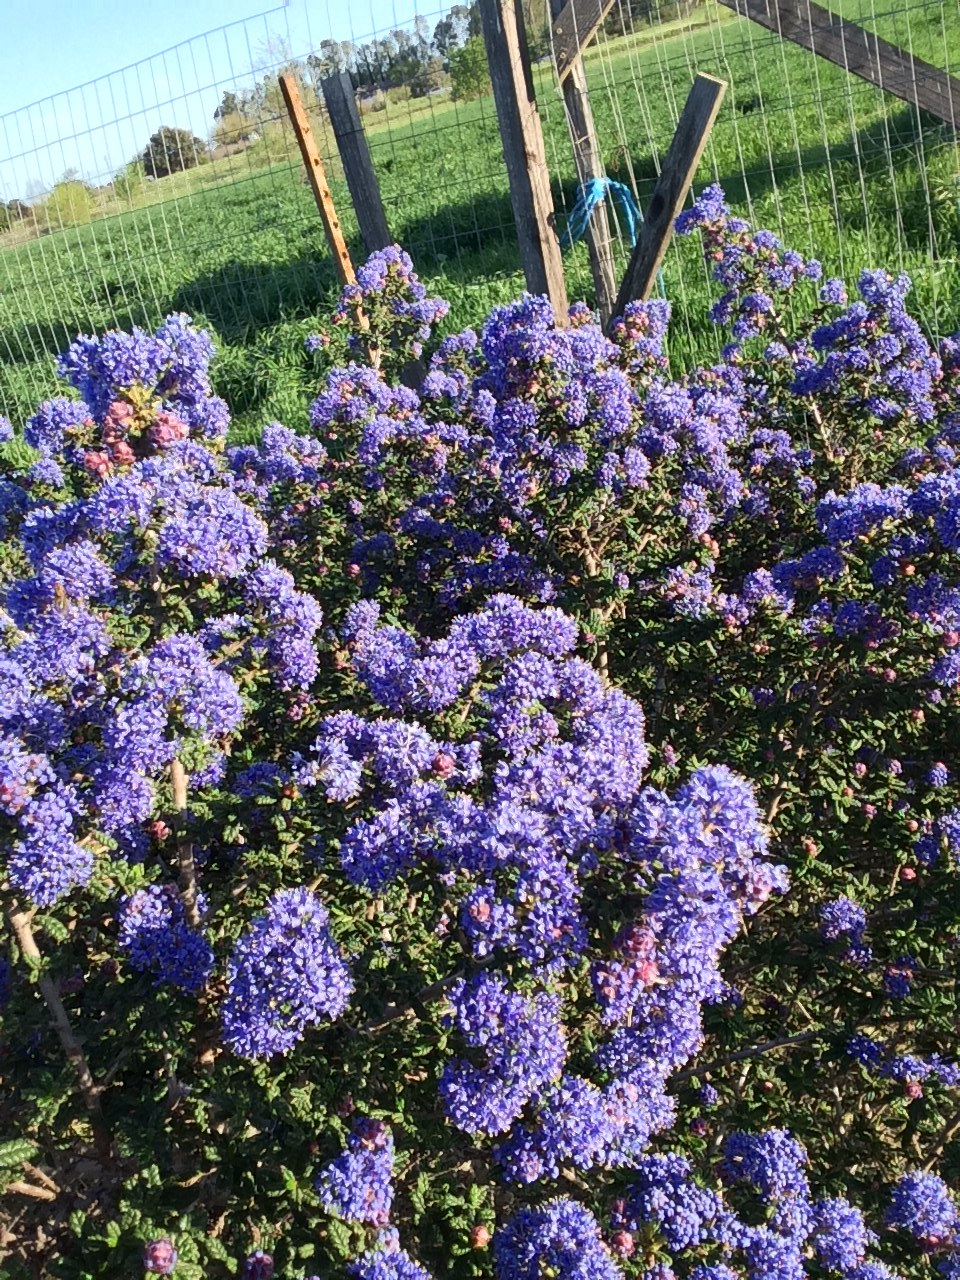 'Blue Blossom' Ceanothus blooming in our first hedgerow.  This native is a beautiful refuge for natives and beneficials.